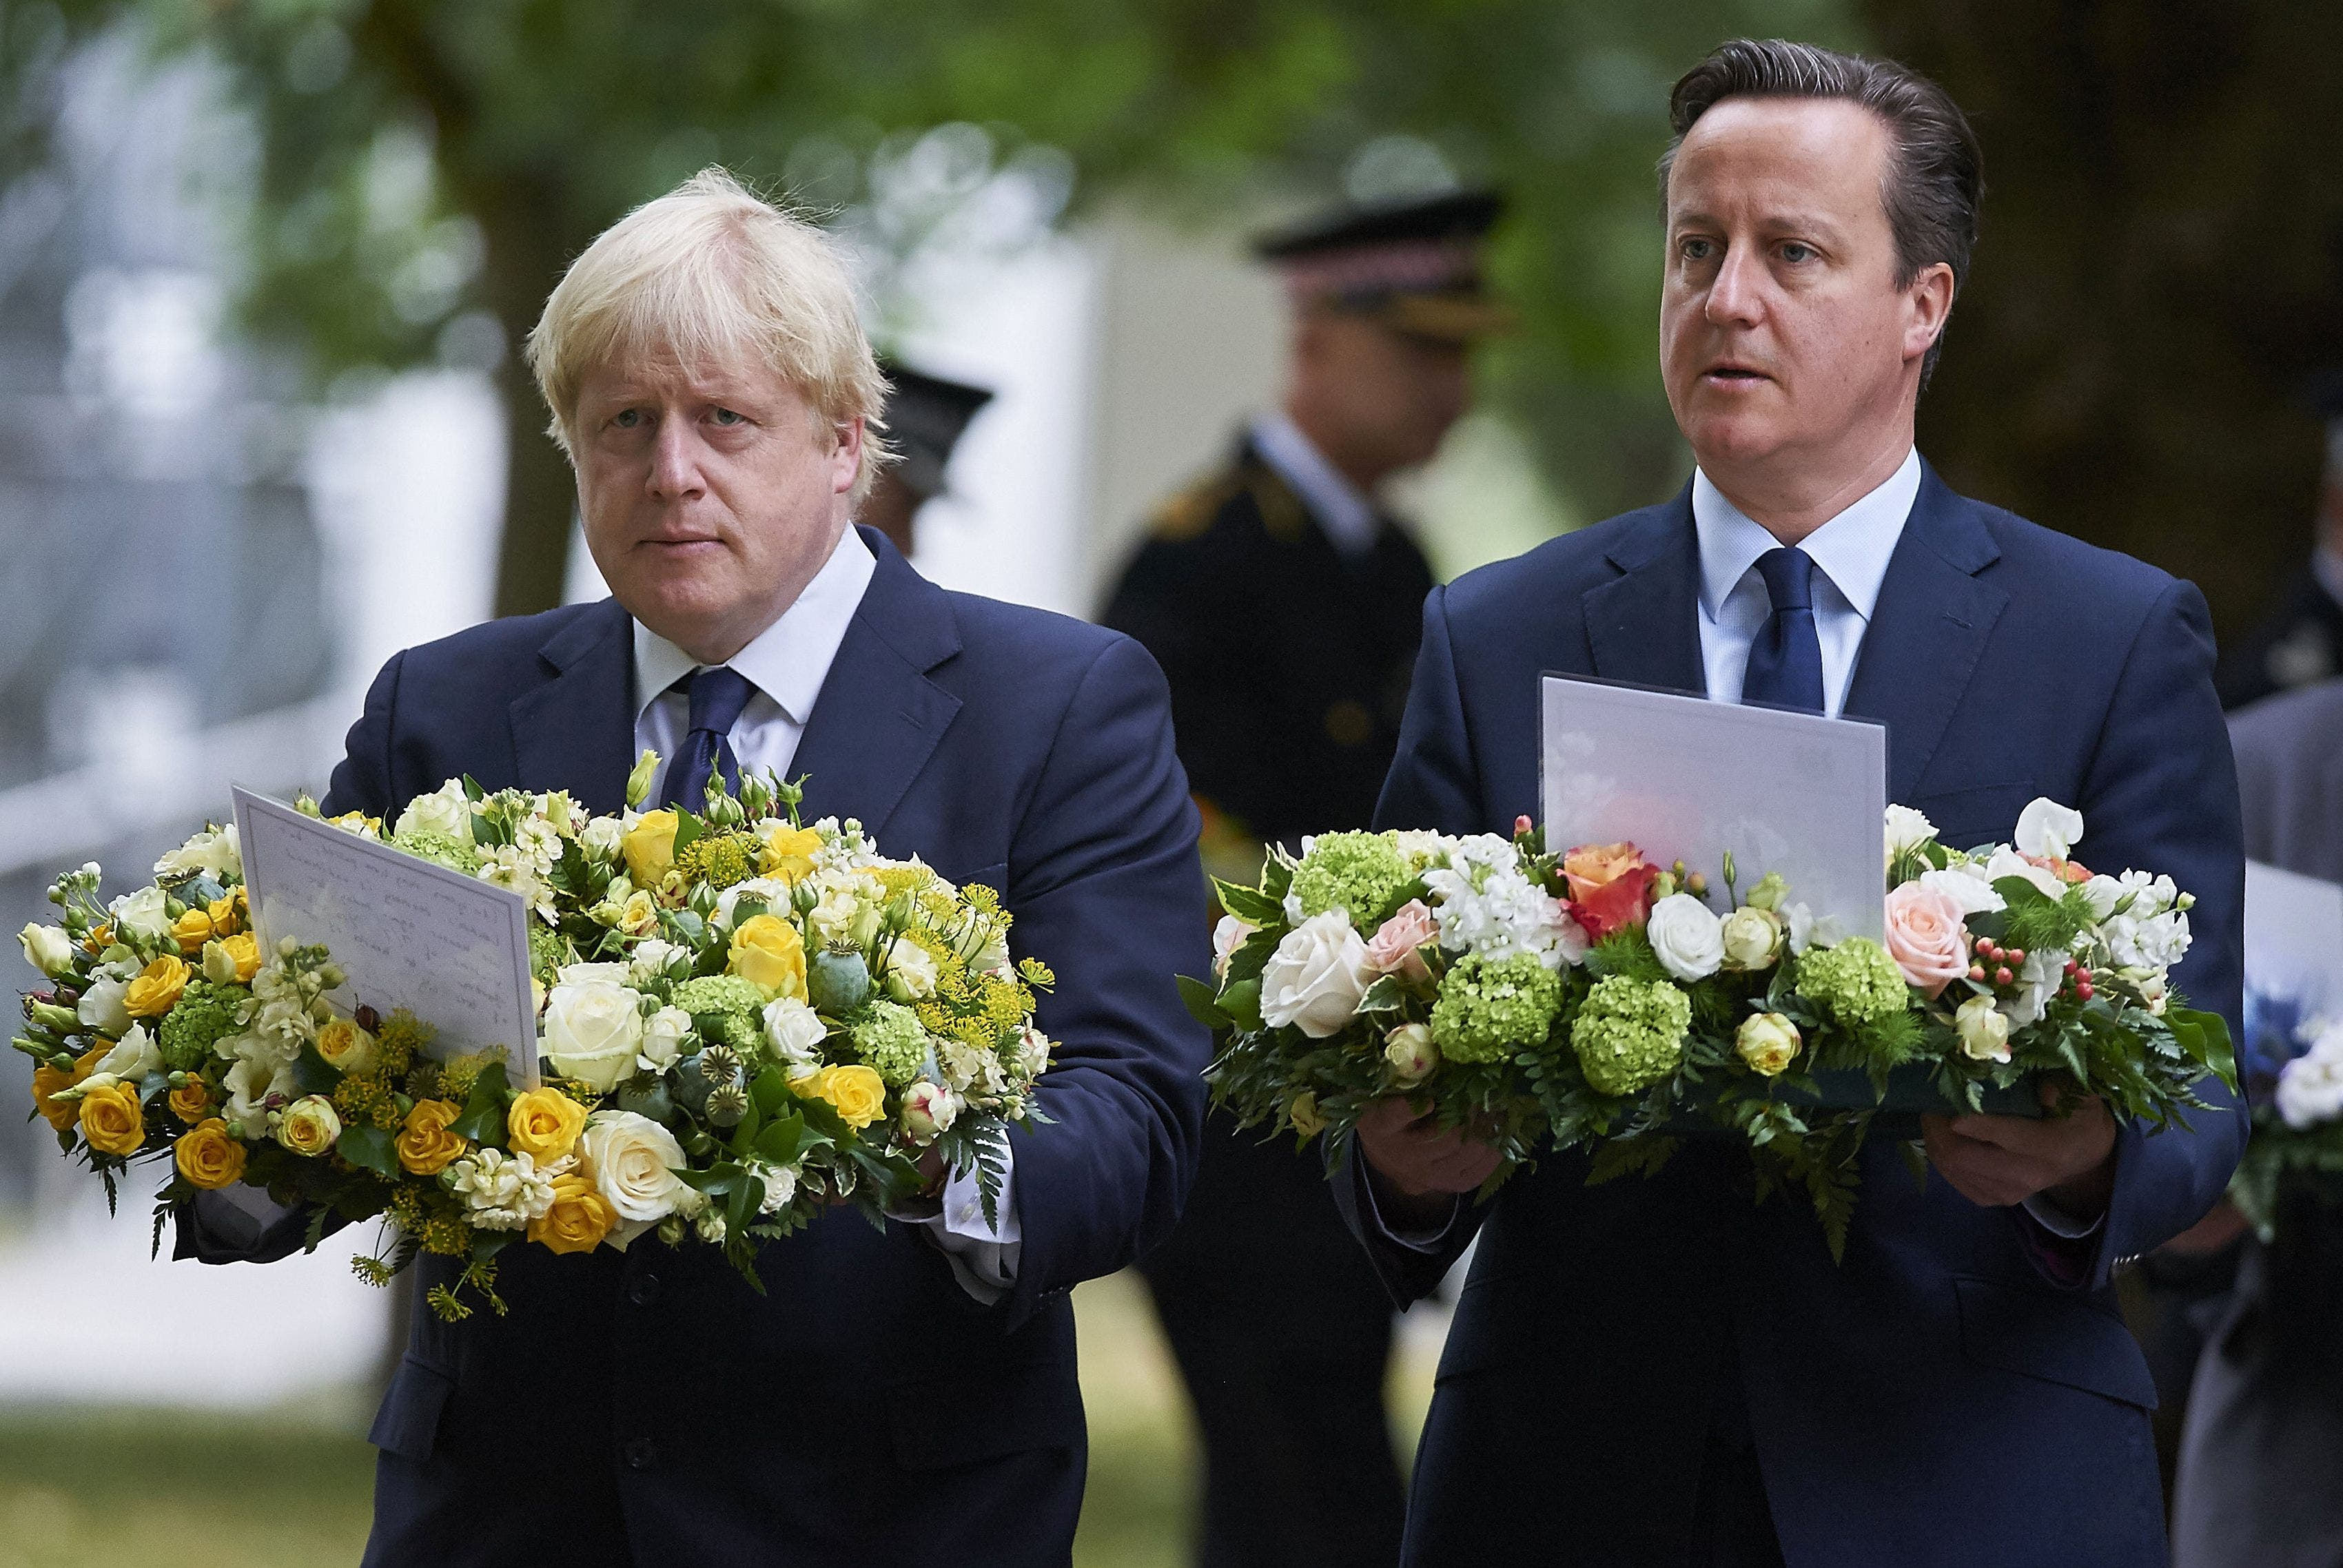 British Prime Minister David Cameron (R) and London Mayor Boris Johnson take part in a wreath laying ceremony in London's Hyde Park on July 7, 2015. (AFP)